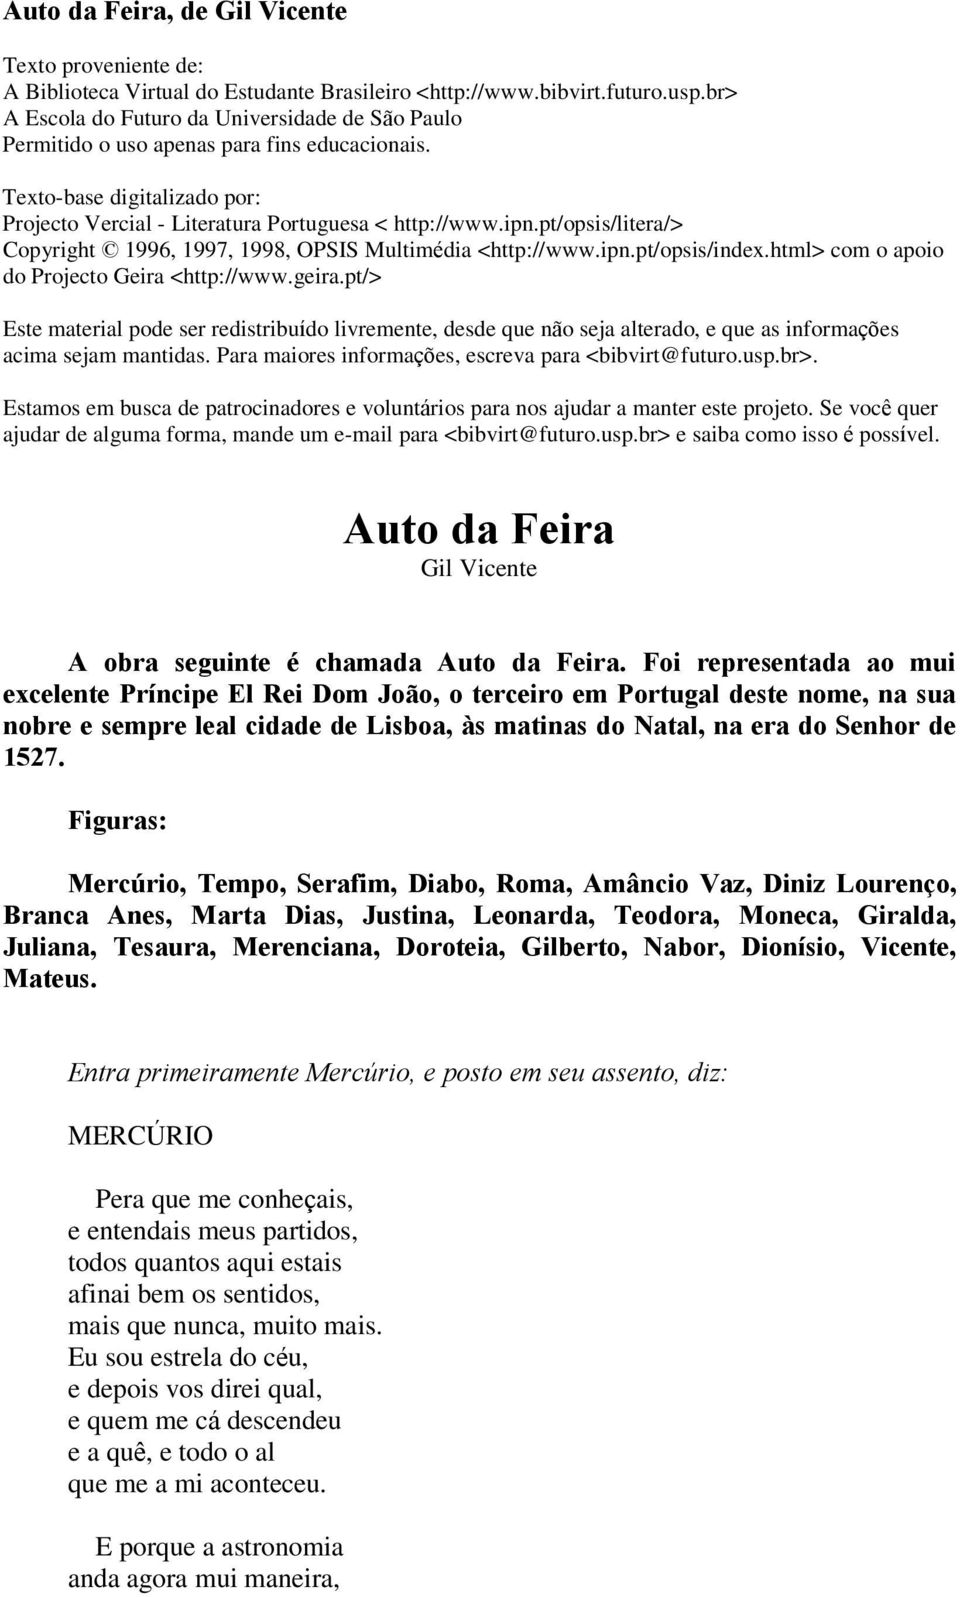 pt/opsis/litera/> Copyright 1996, 1997, 1998, OPSIS Multimédia <http://www.ipn.pt/opsis/index.html> com o apoio do Projecto Geira <http://www.geira.